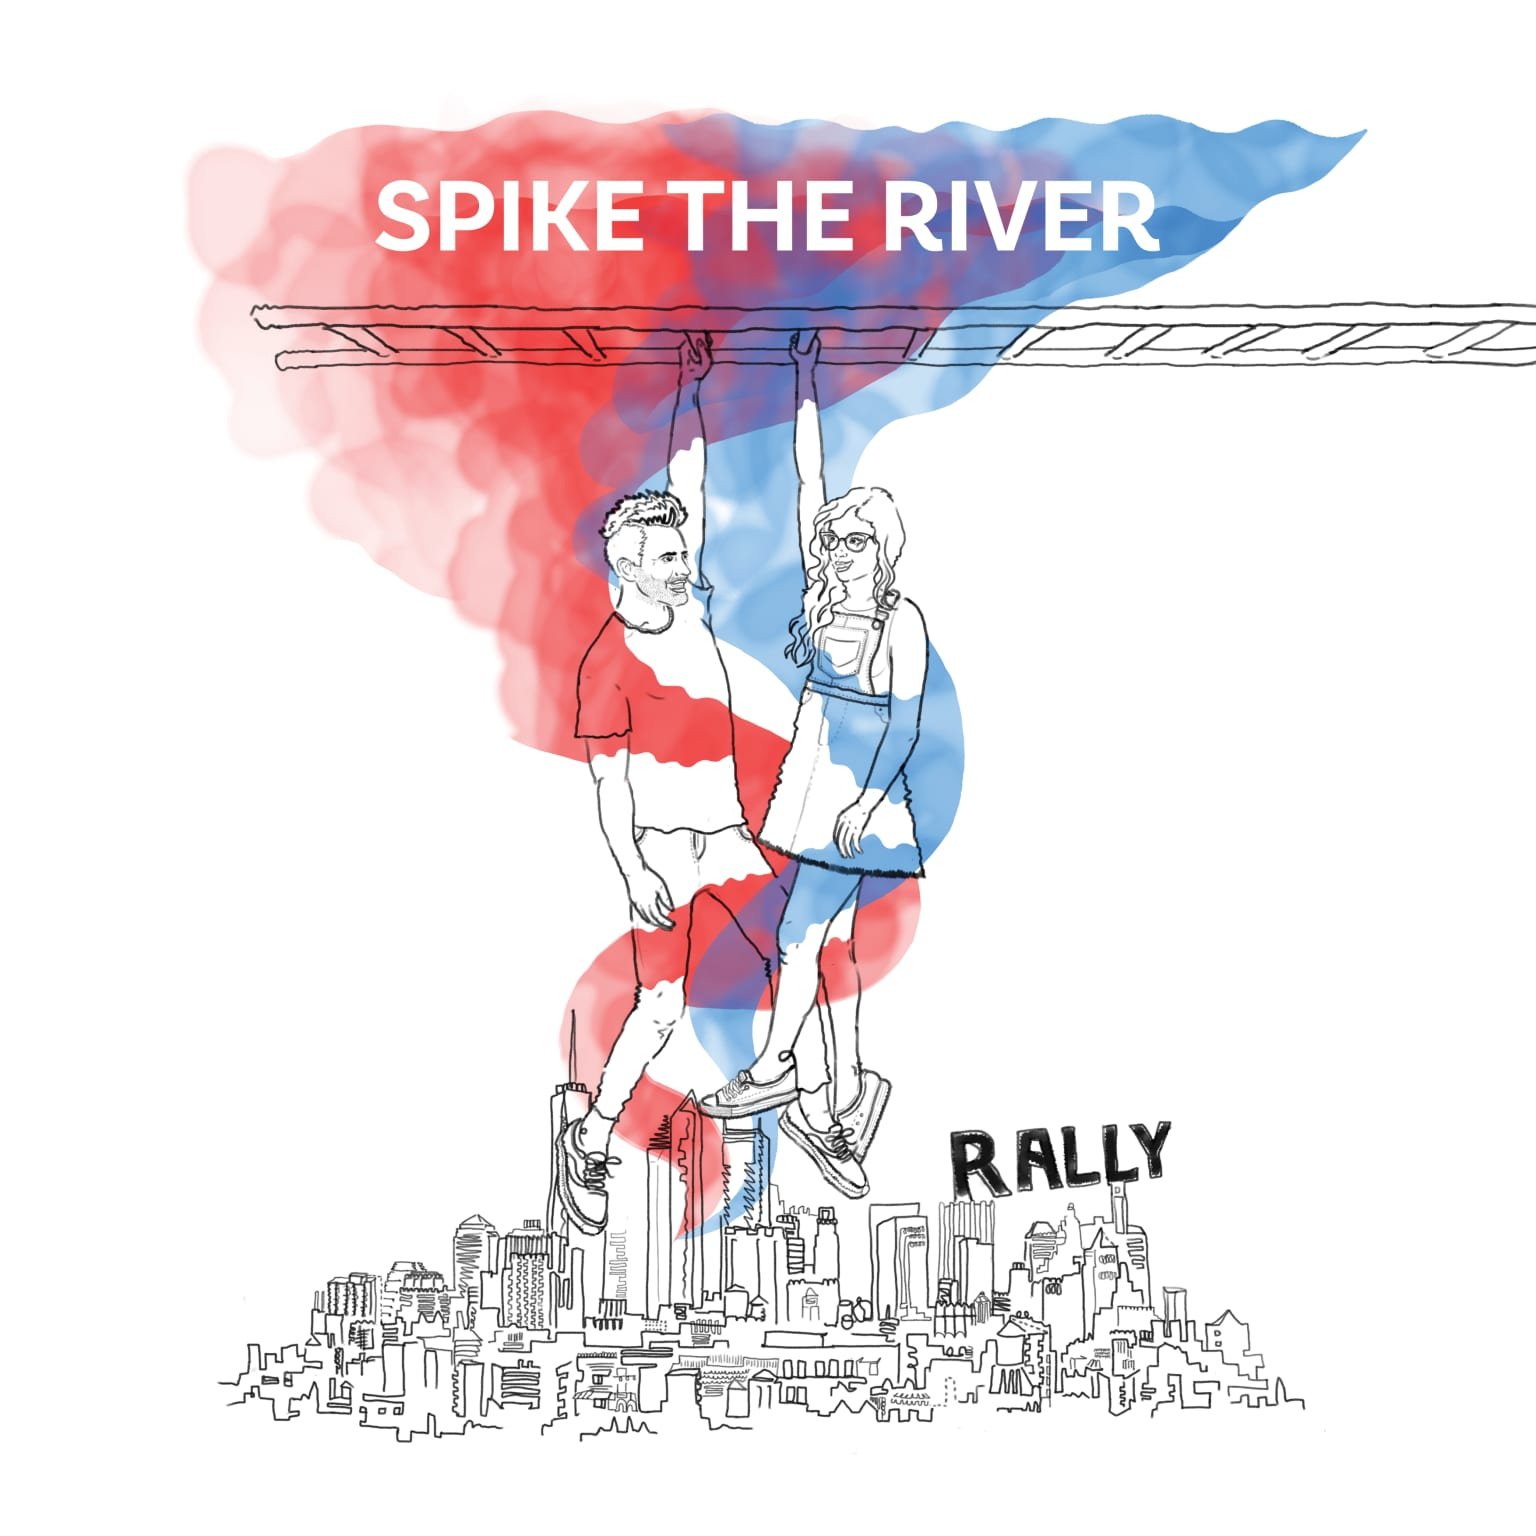 Spike The River album art and identity design